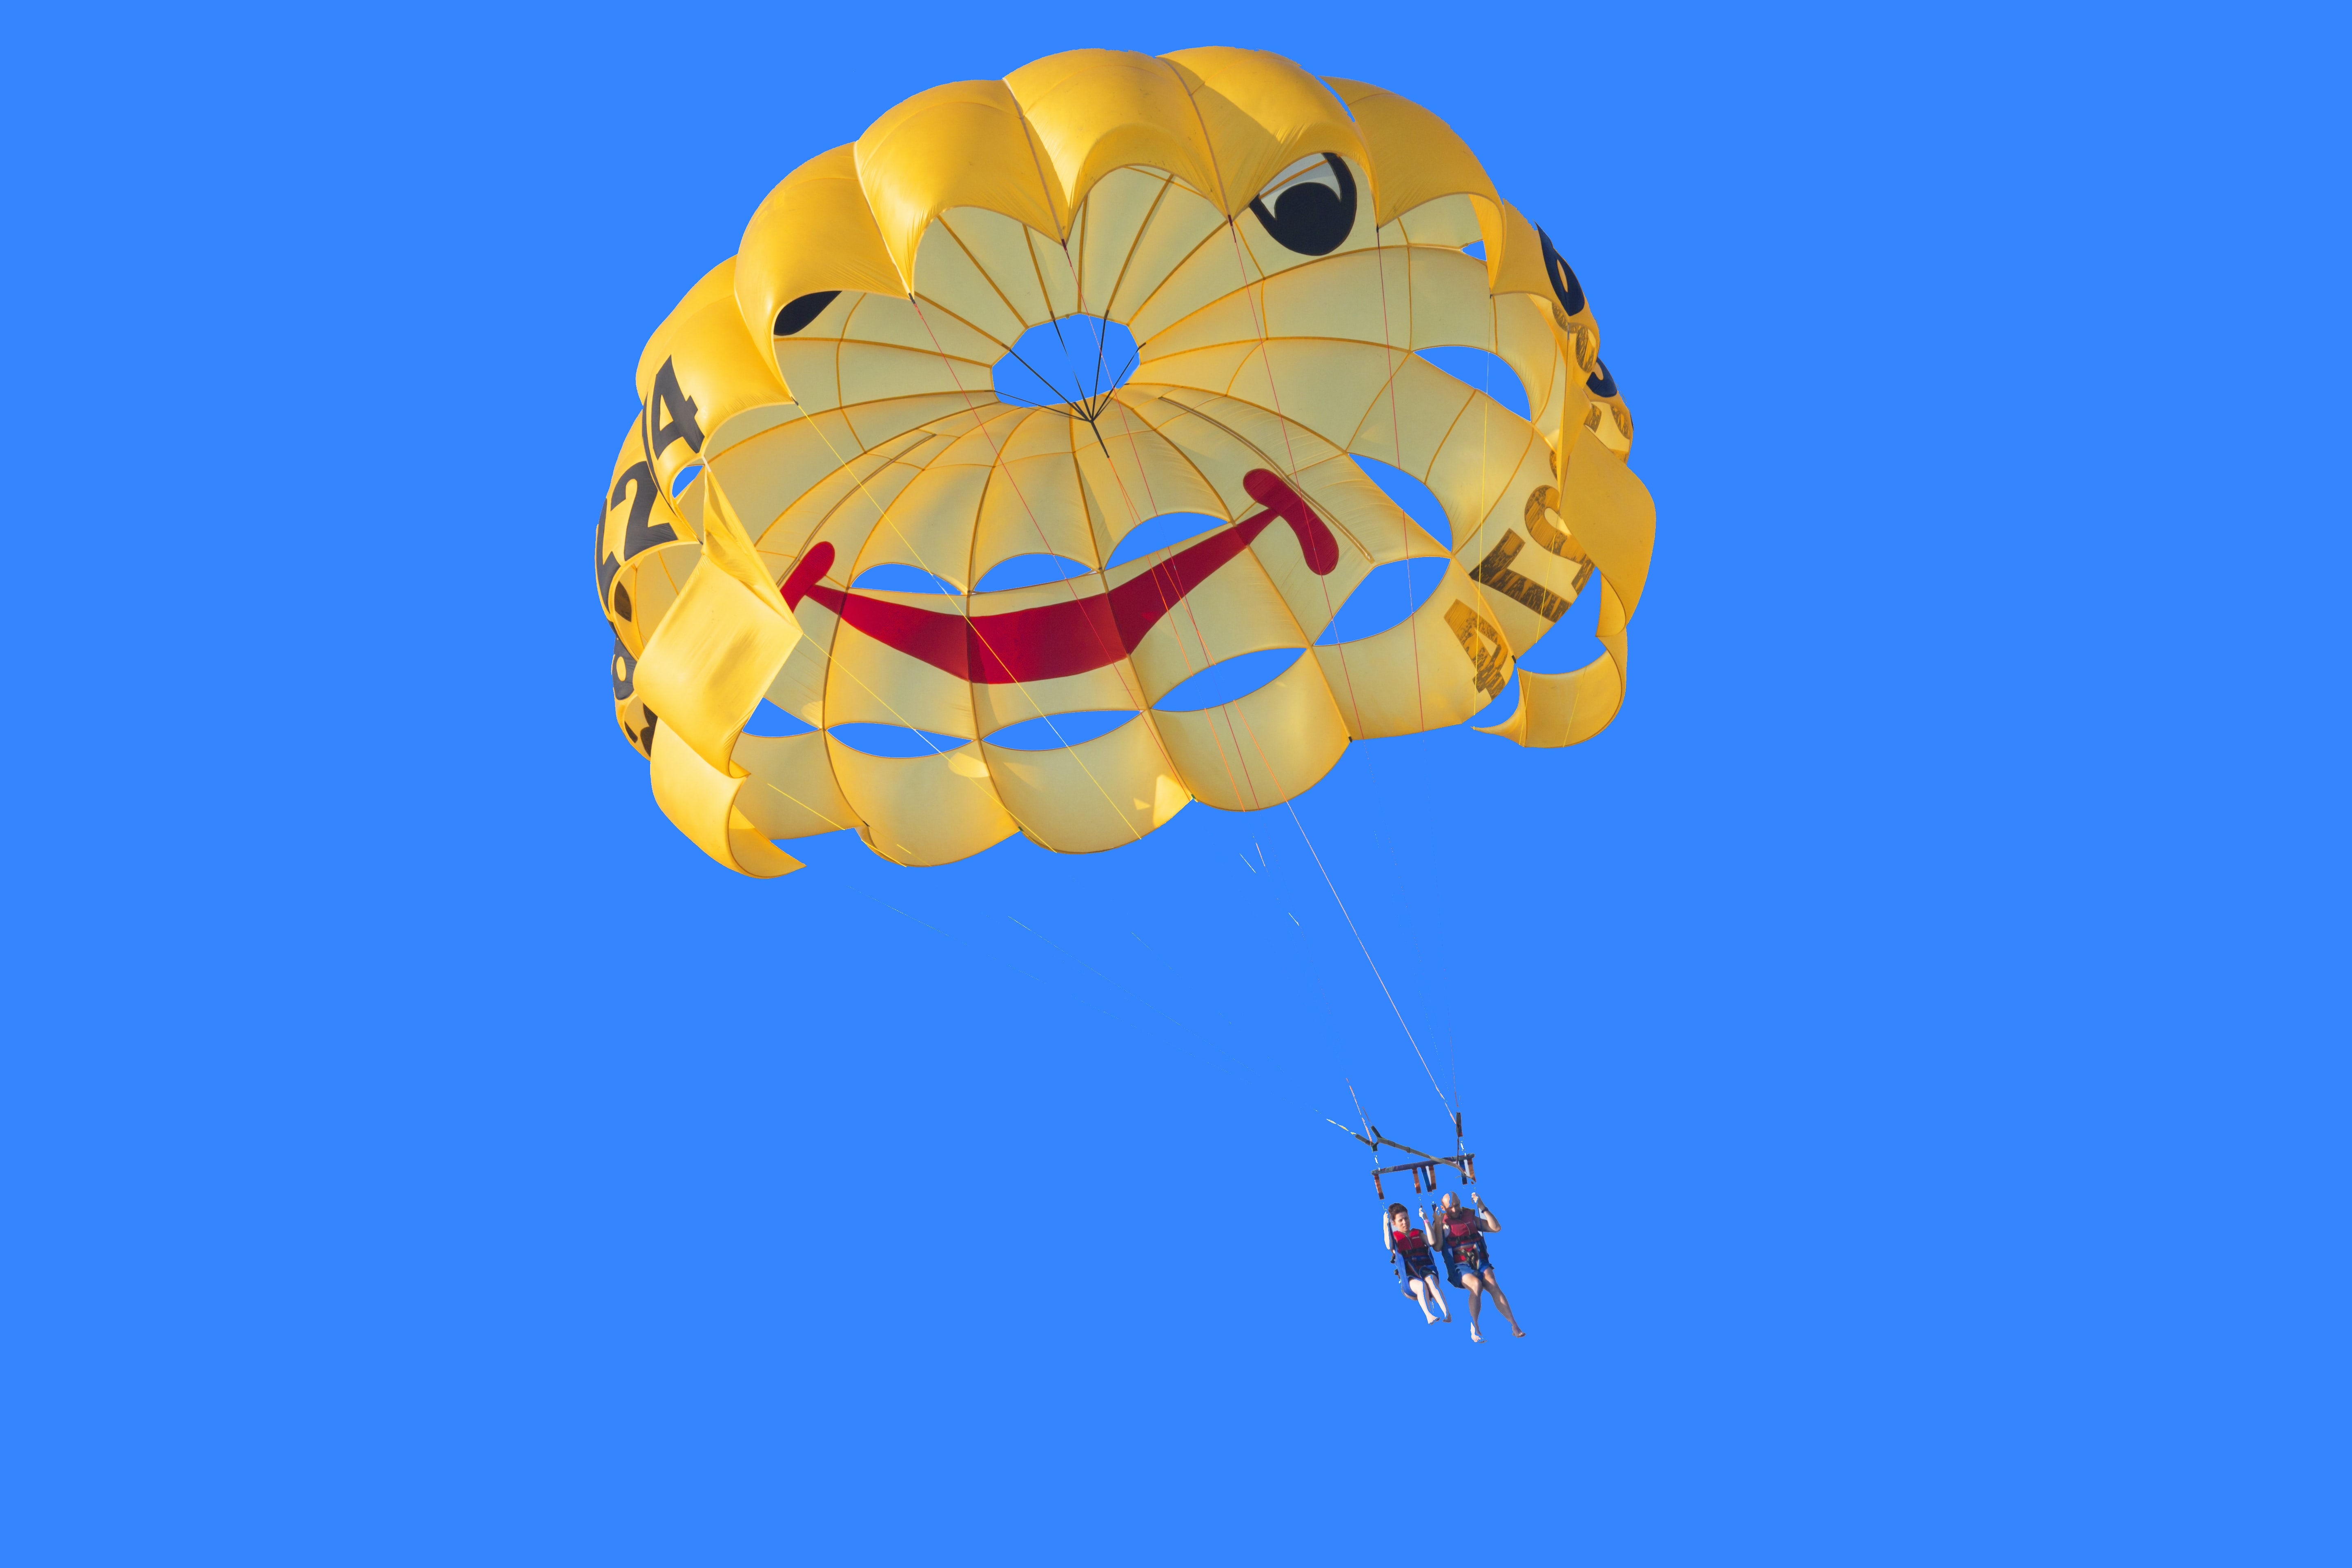 People parachuting across a blue sky with a yellow smiley face parachute